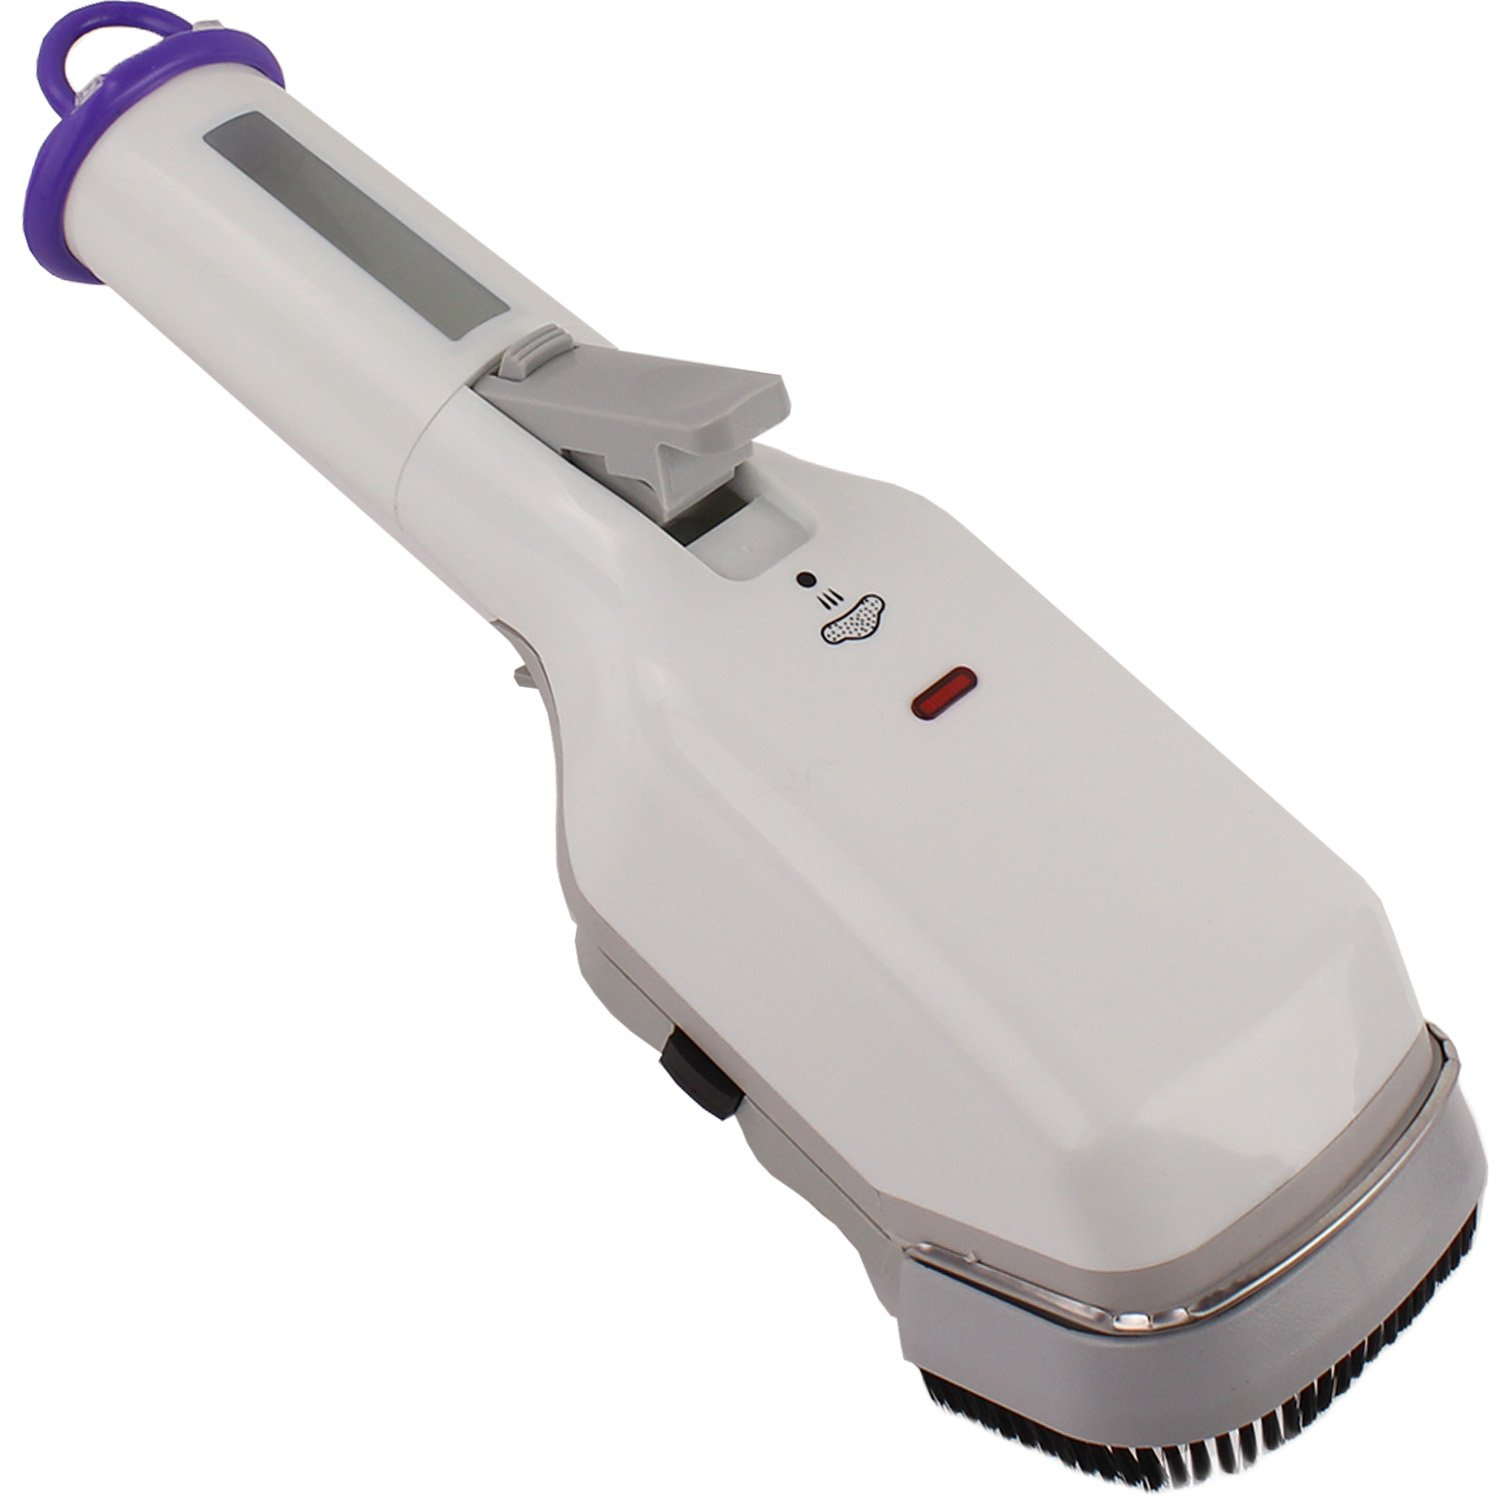 Handheld Electric Clothing Steamer with Brush For Home and Travel by bogo Brands